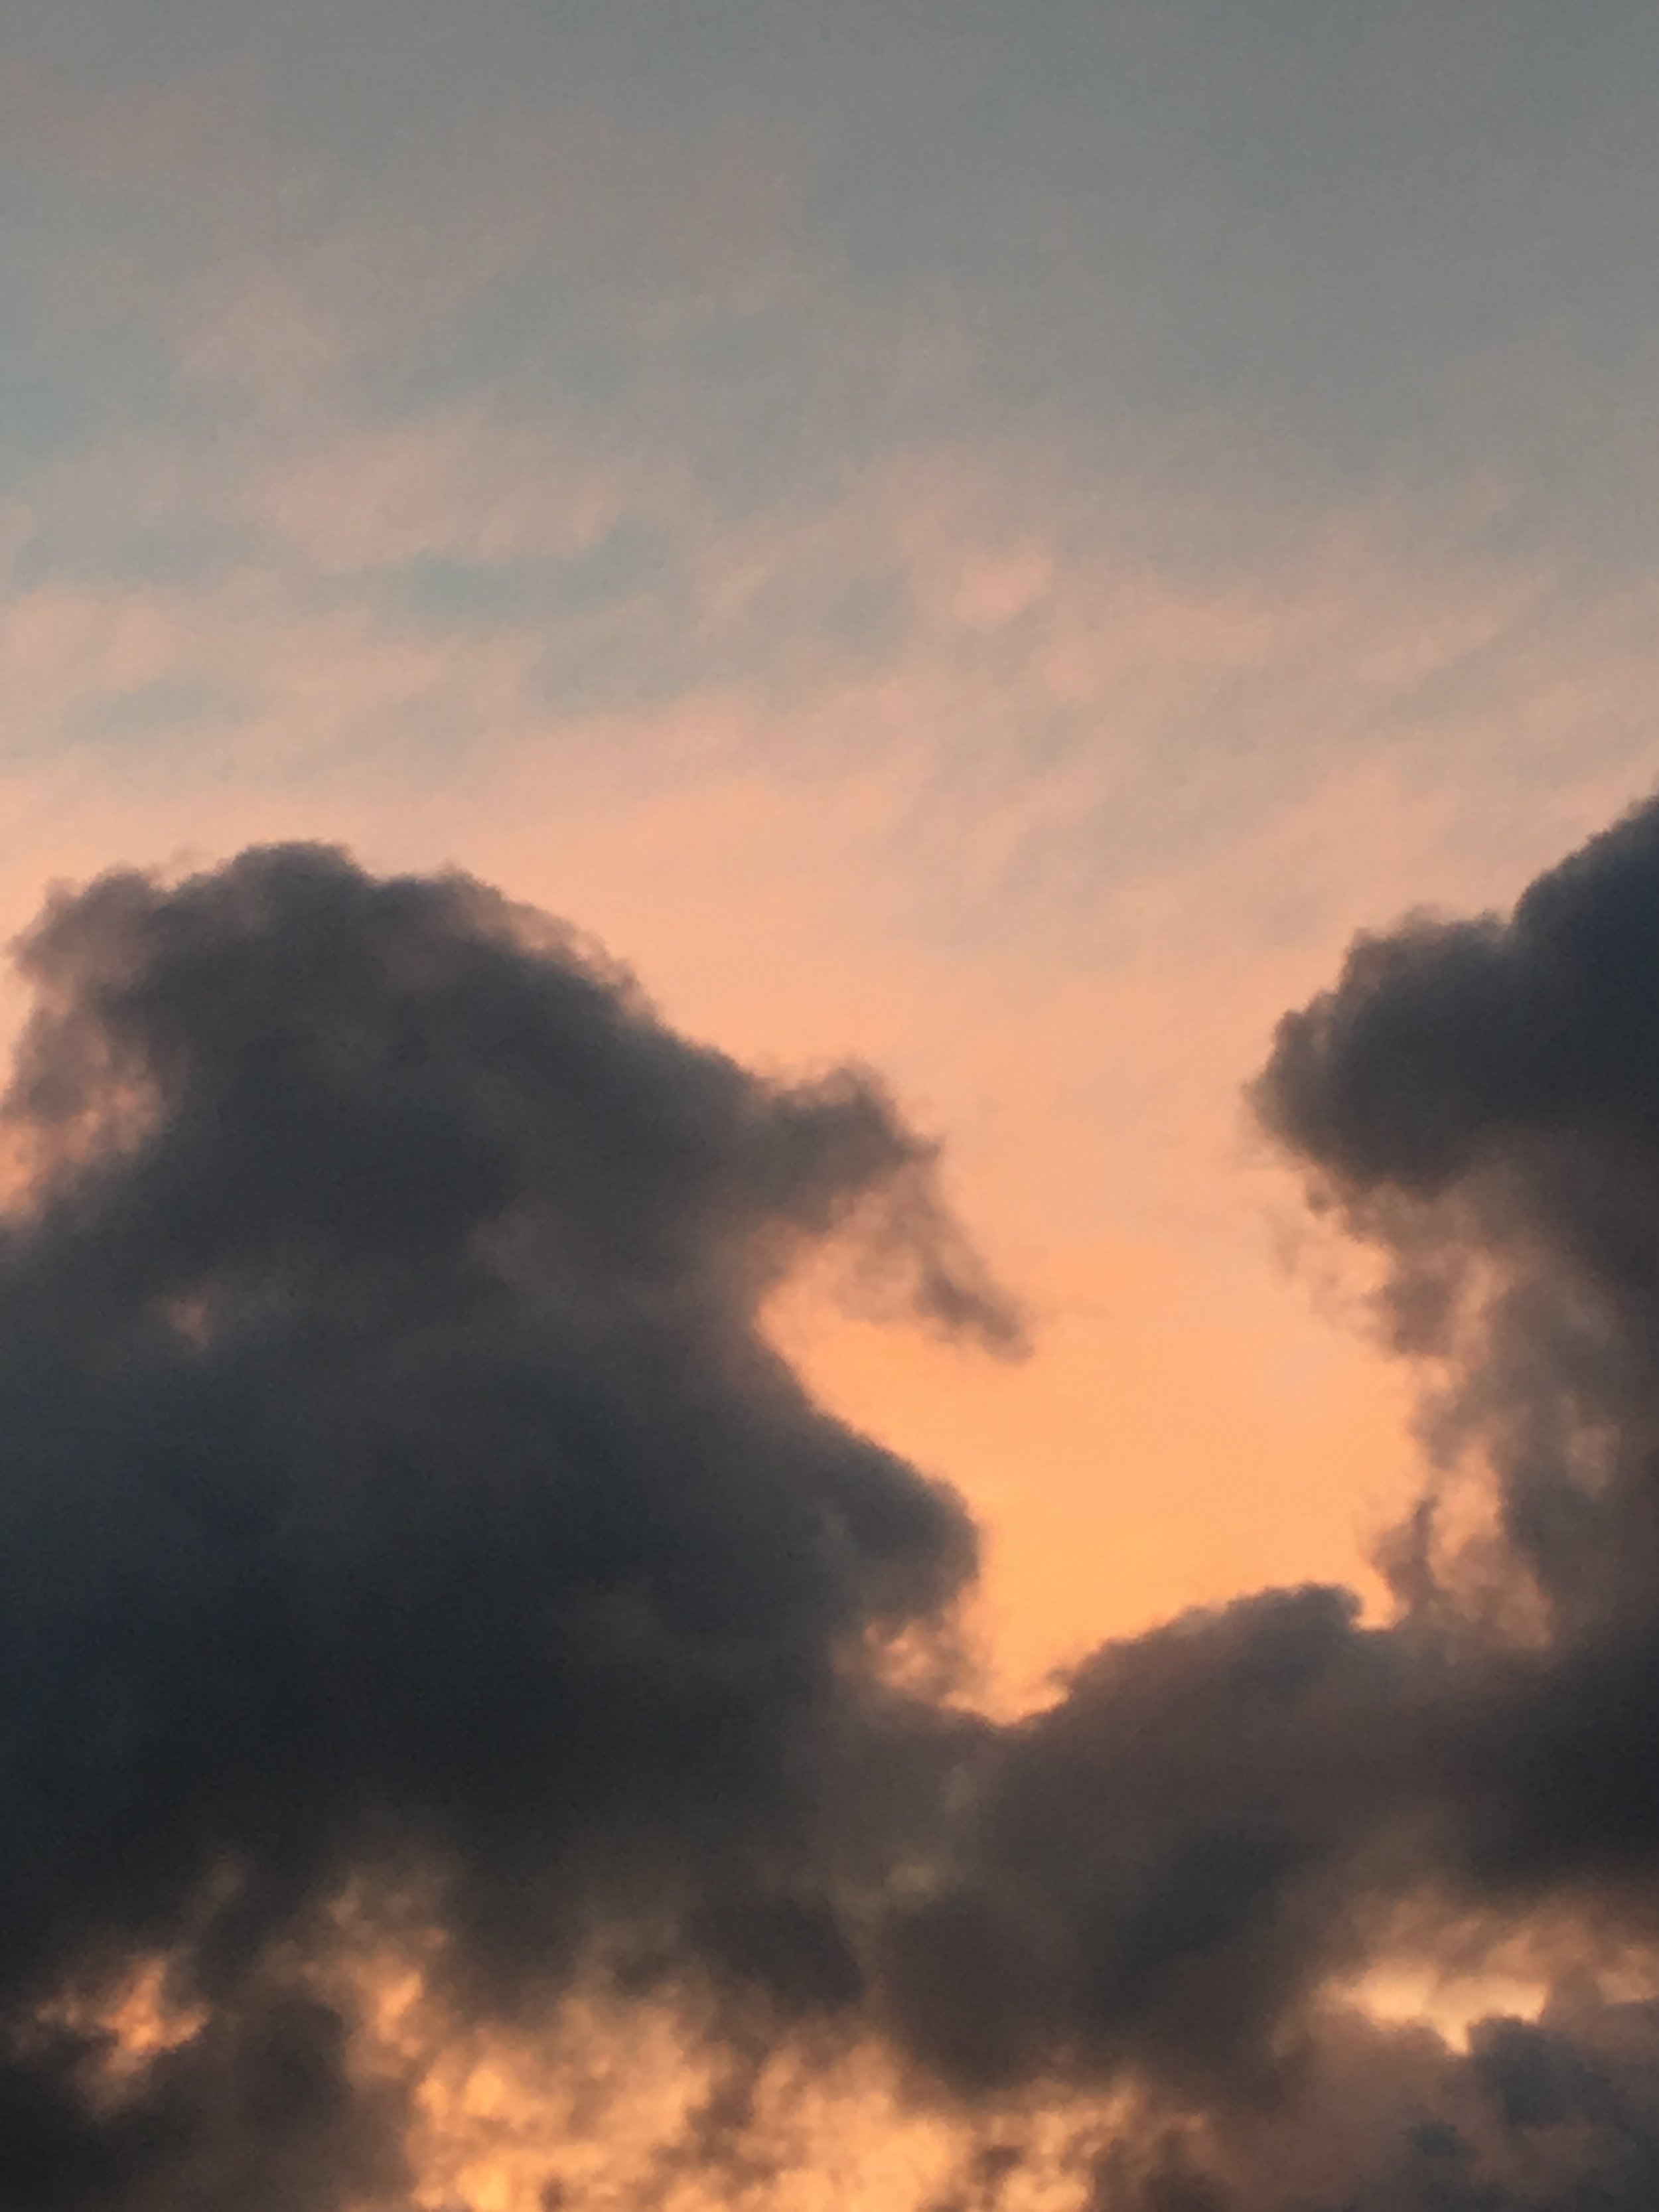 orangey pink morning sky with clouds